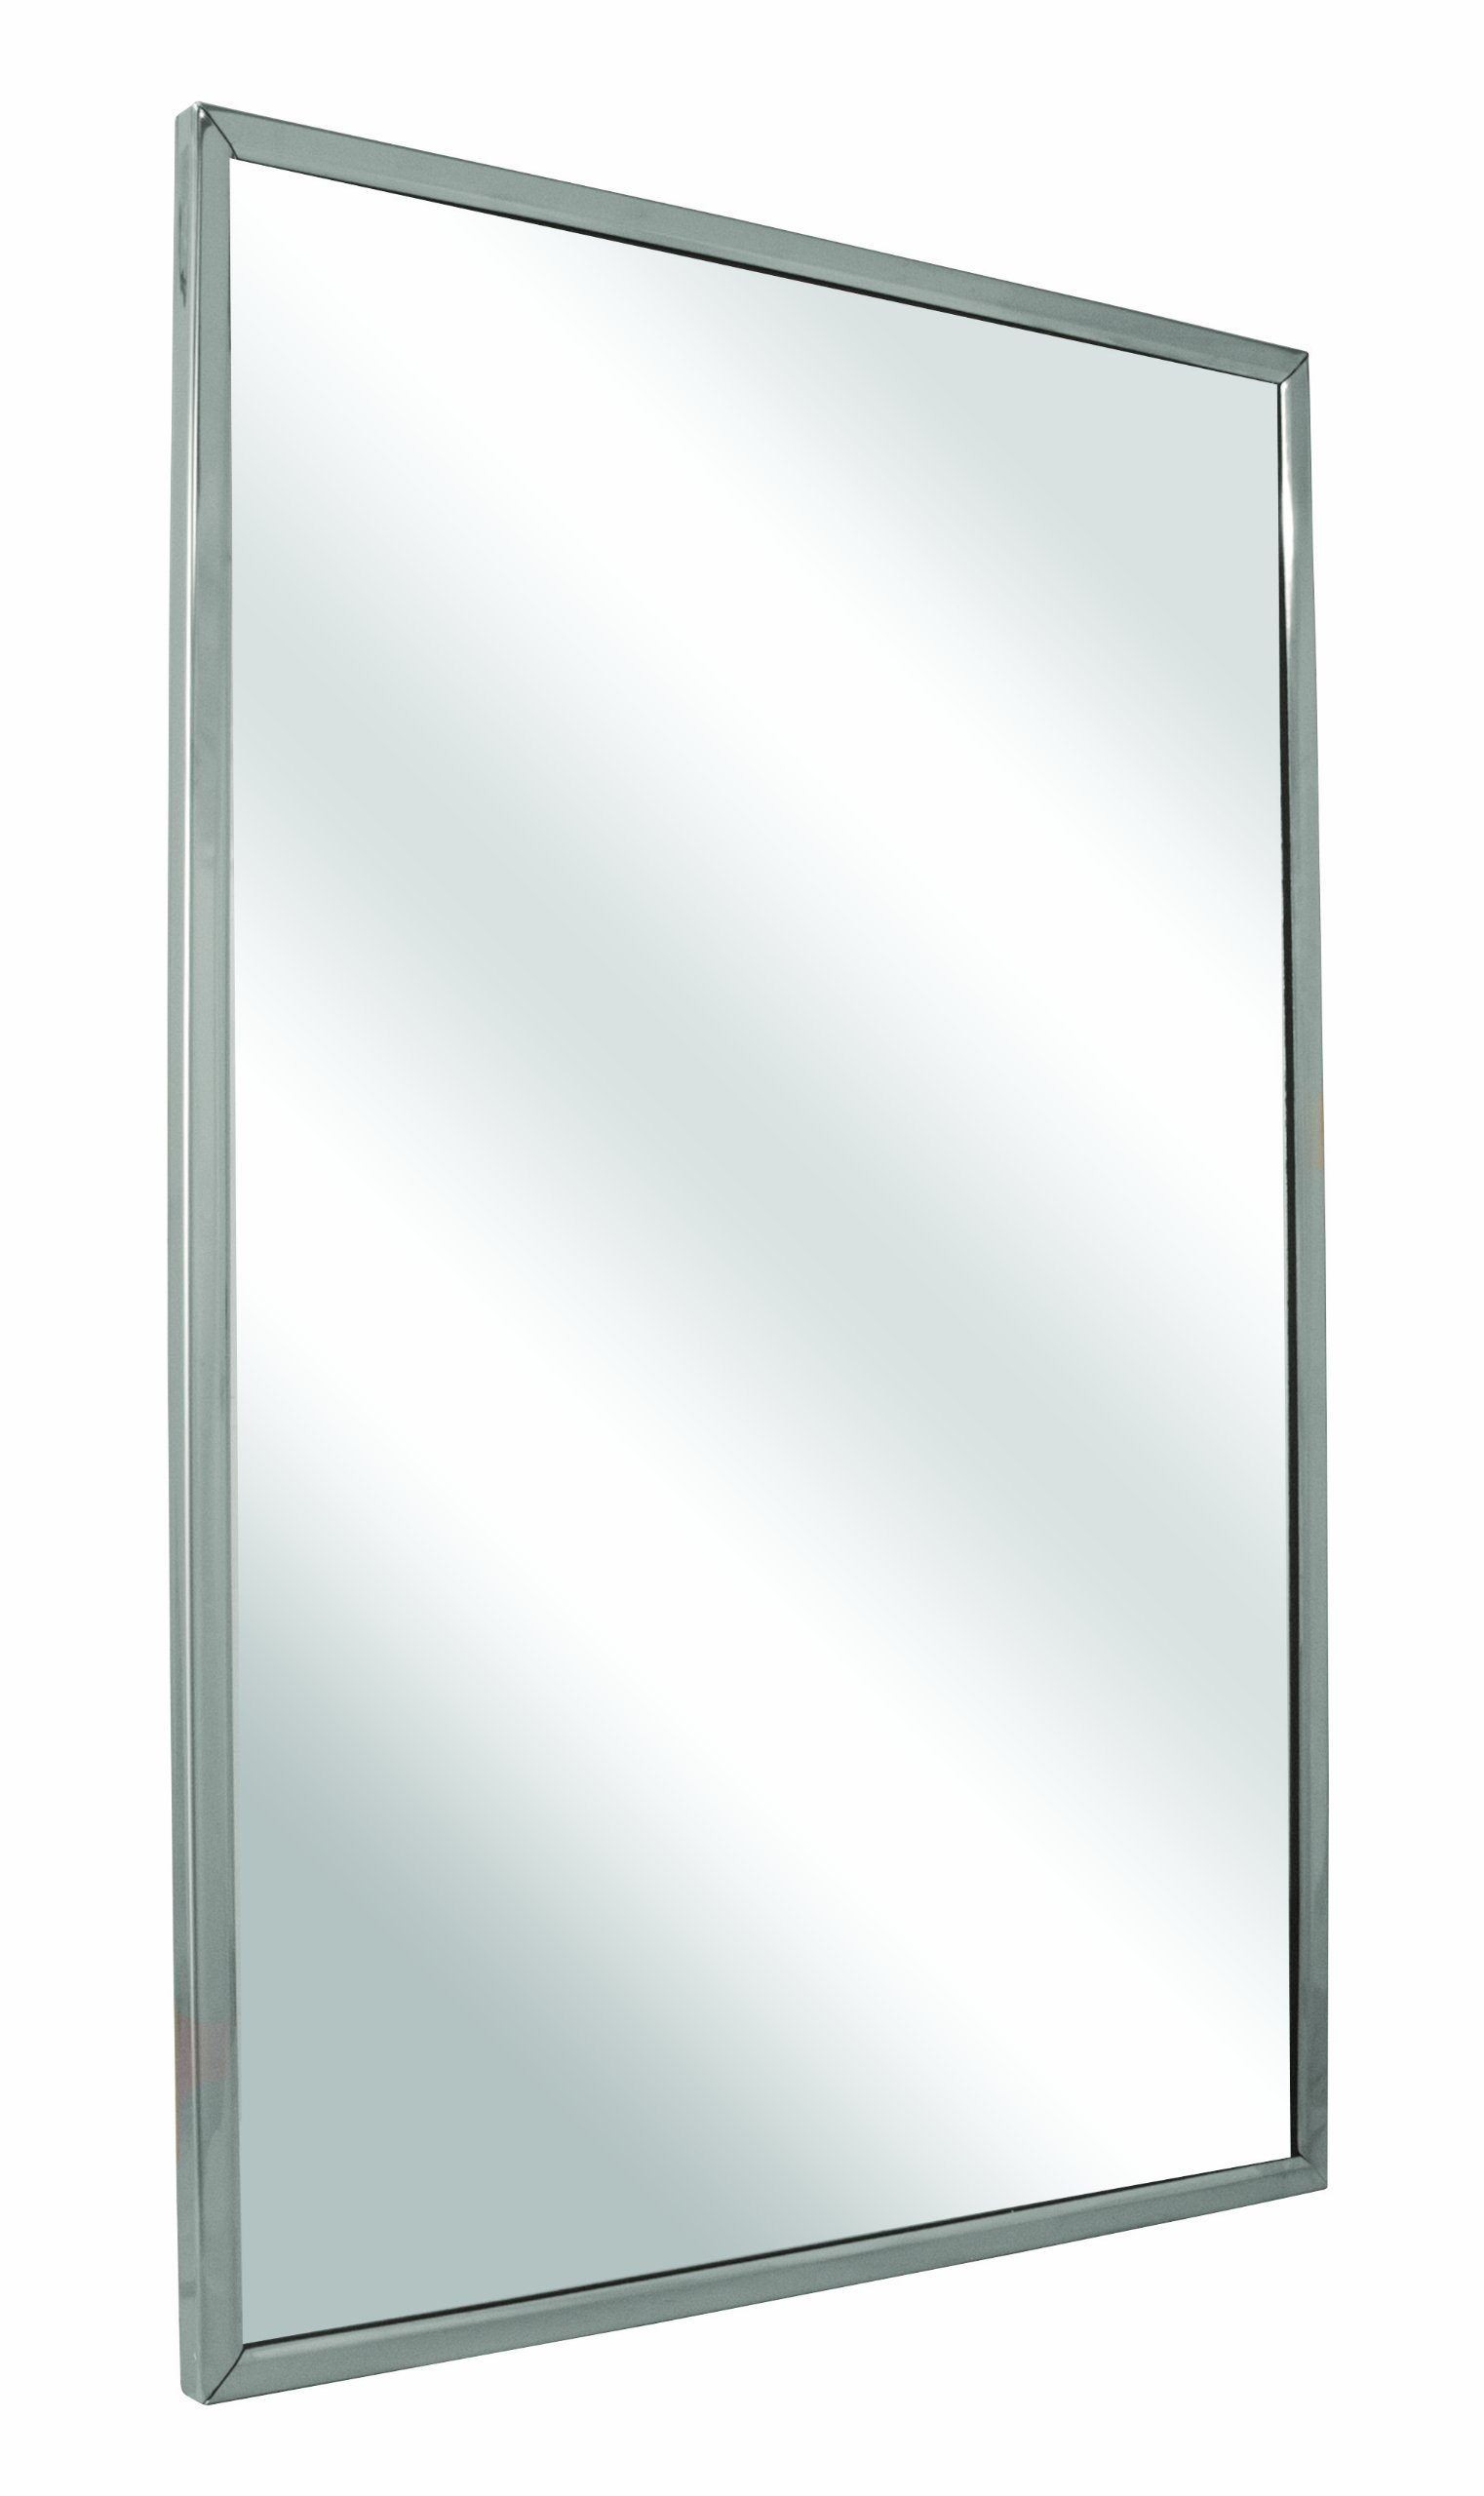 Bradley 780-024360 Float Glass Angle Frame Mirror with Welded Corners and Theft Resistant Mounting, 24'' Width x 36'' Height by Bradley